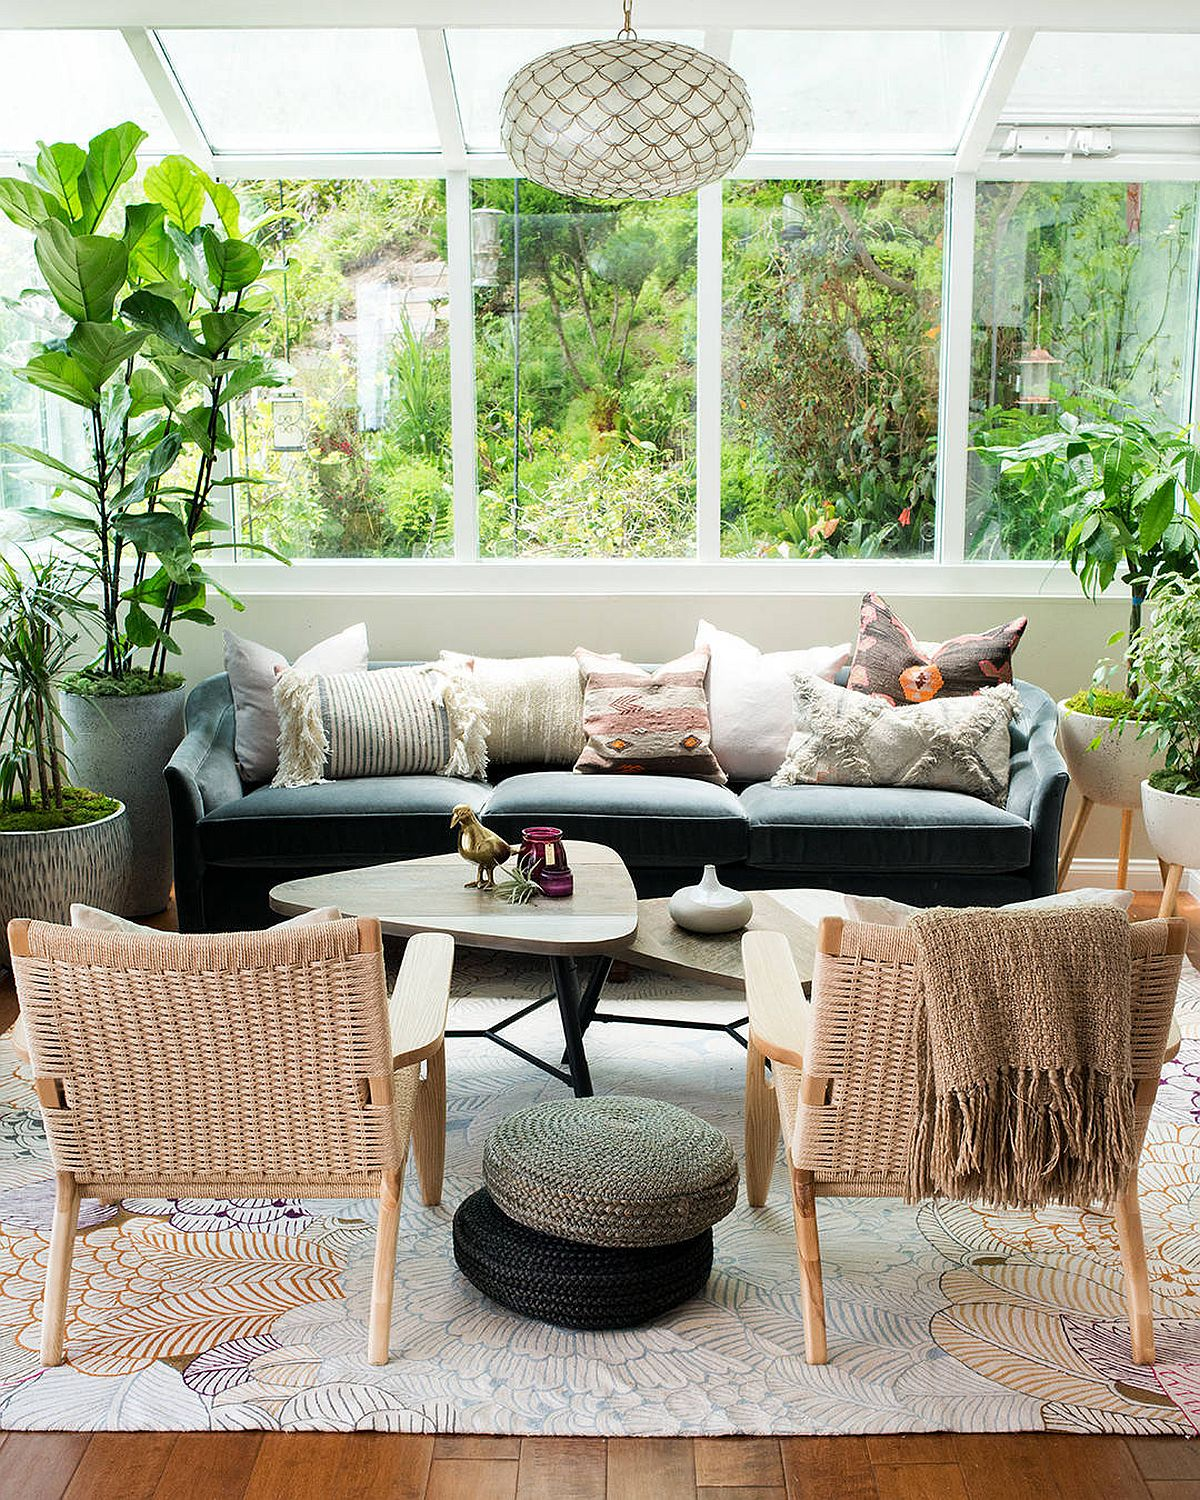 Combine smart decor with splashes of greenery inside the sunroom